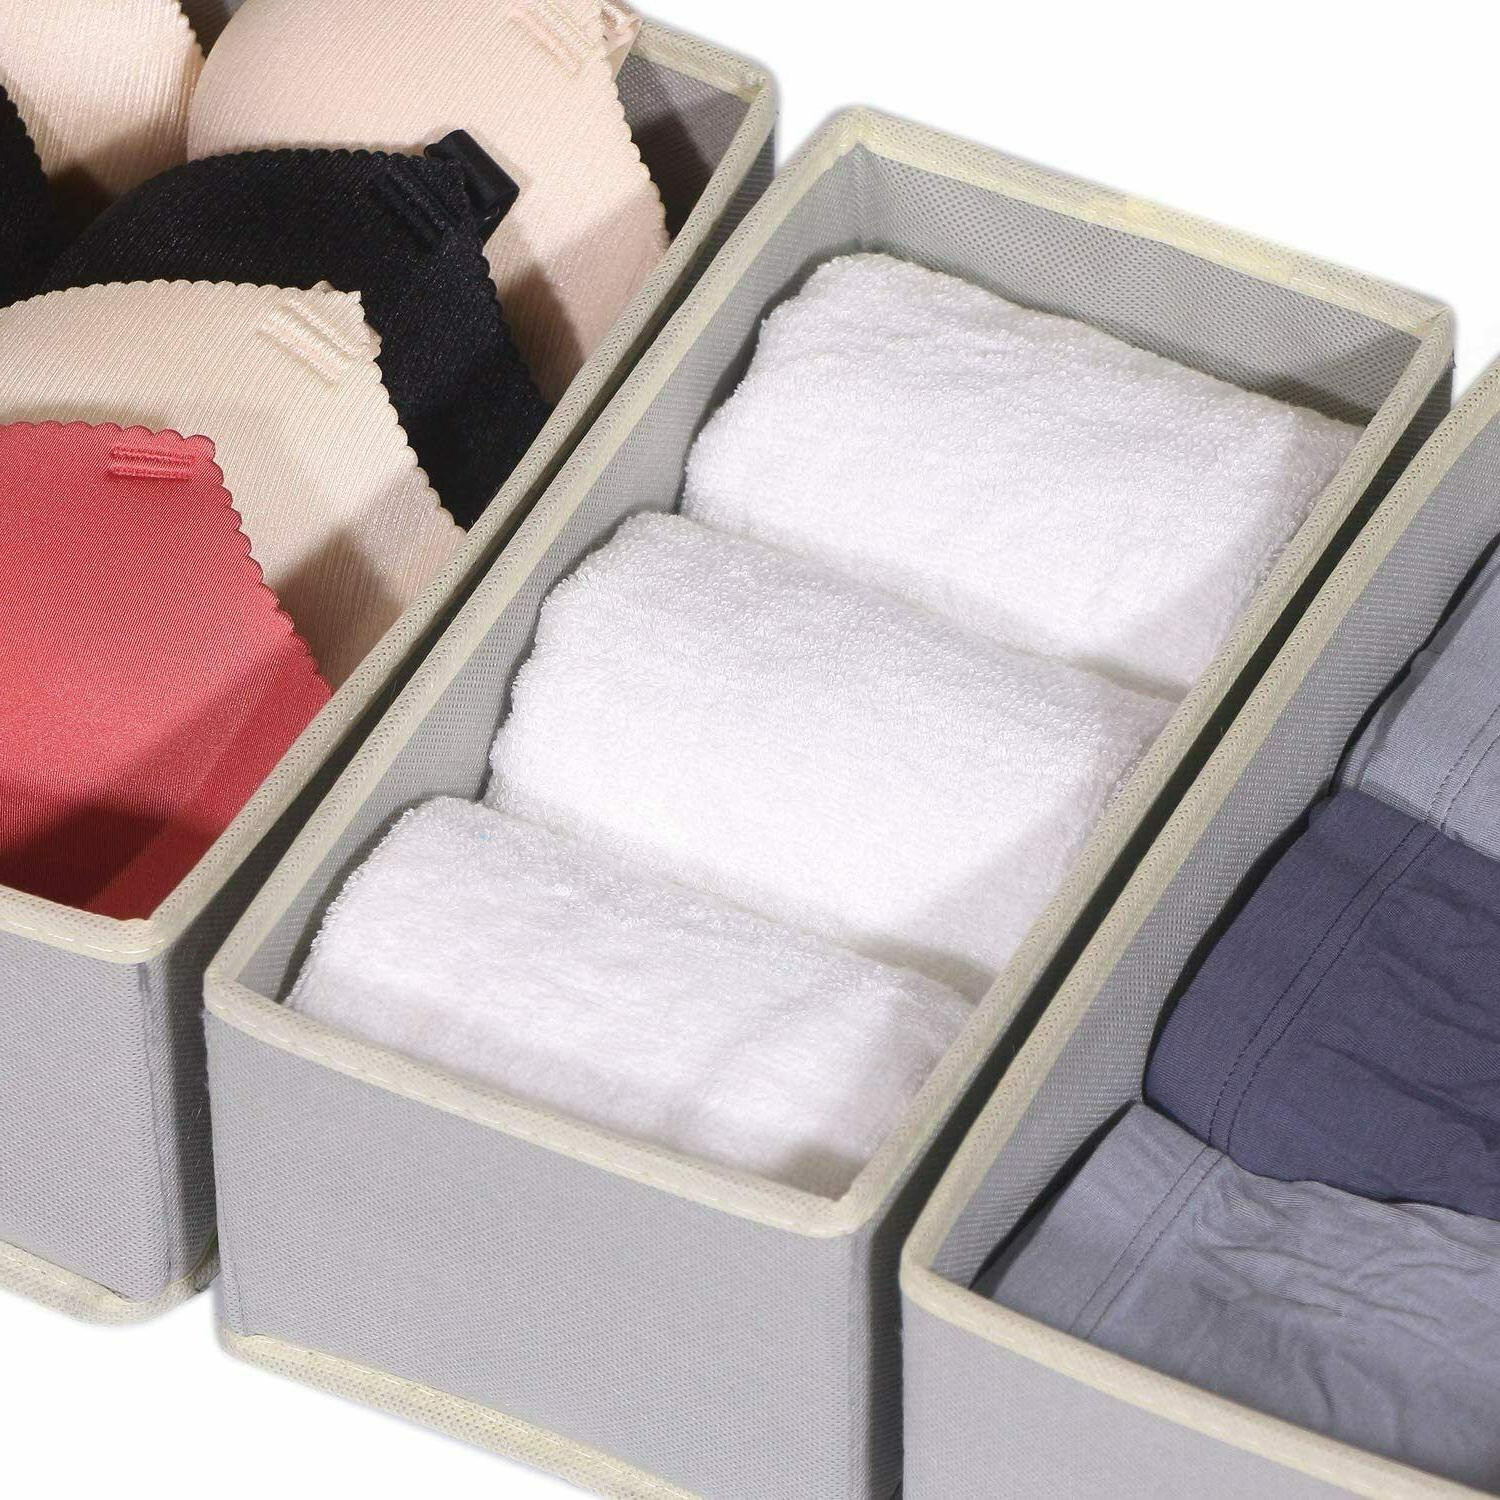 DIOMMELL 12 Foldable Cloth Box